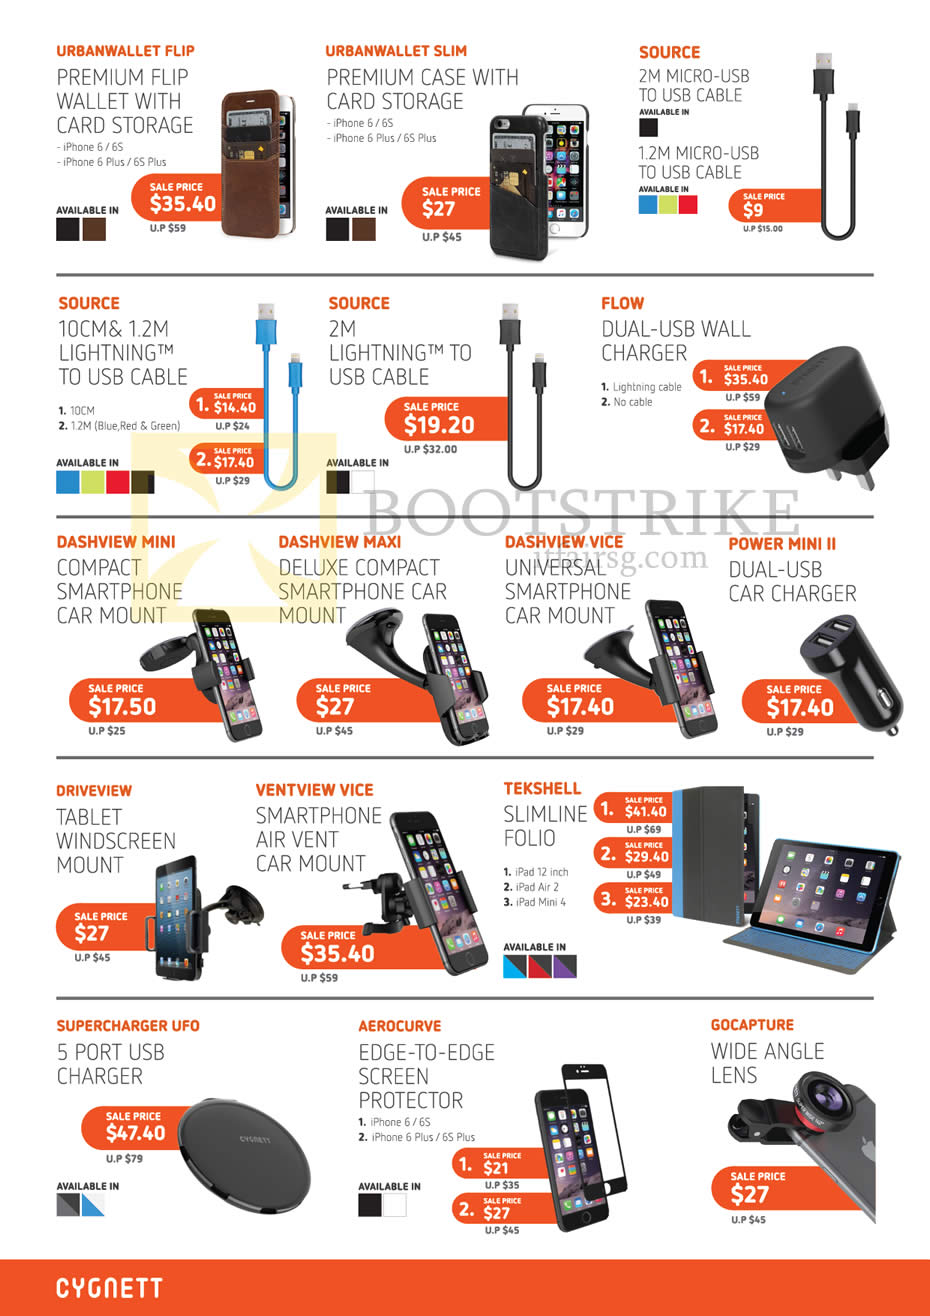 COMEX 2016 price list image brochure of Nubox Cygnett Cases, Urbanwallet, Source, Cables, Flow, Dashview, Driveview, Ventview, Tekshell, Supercharge, Gocapture